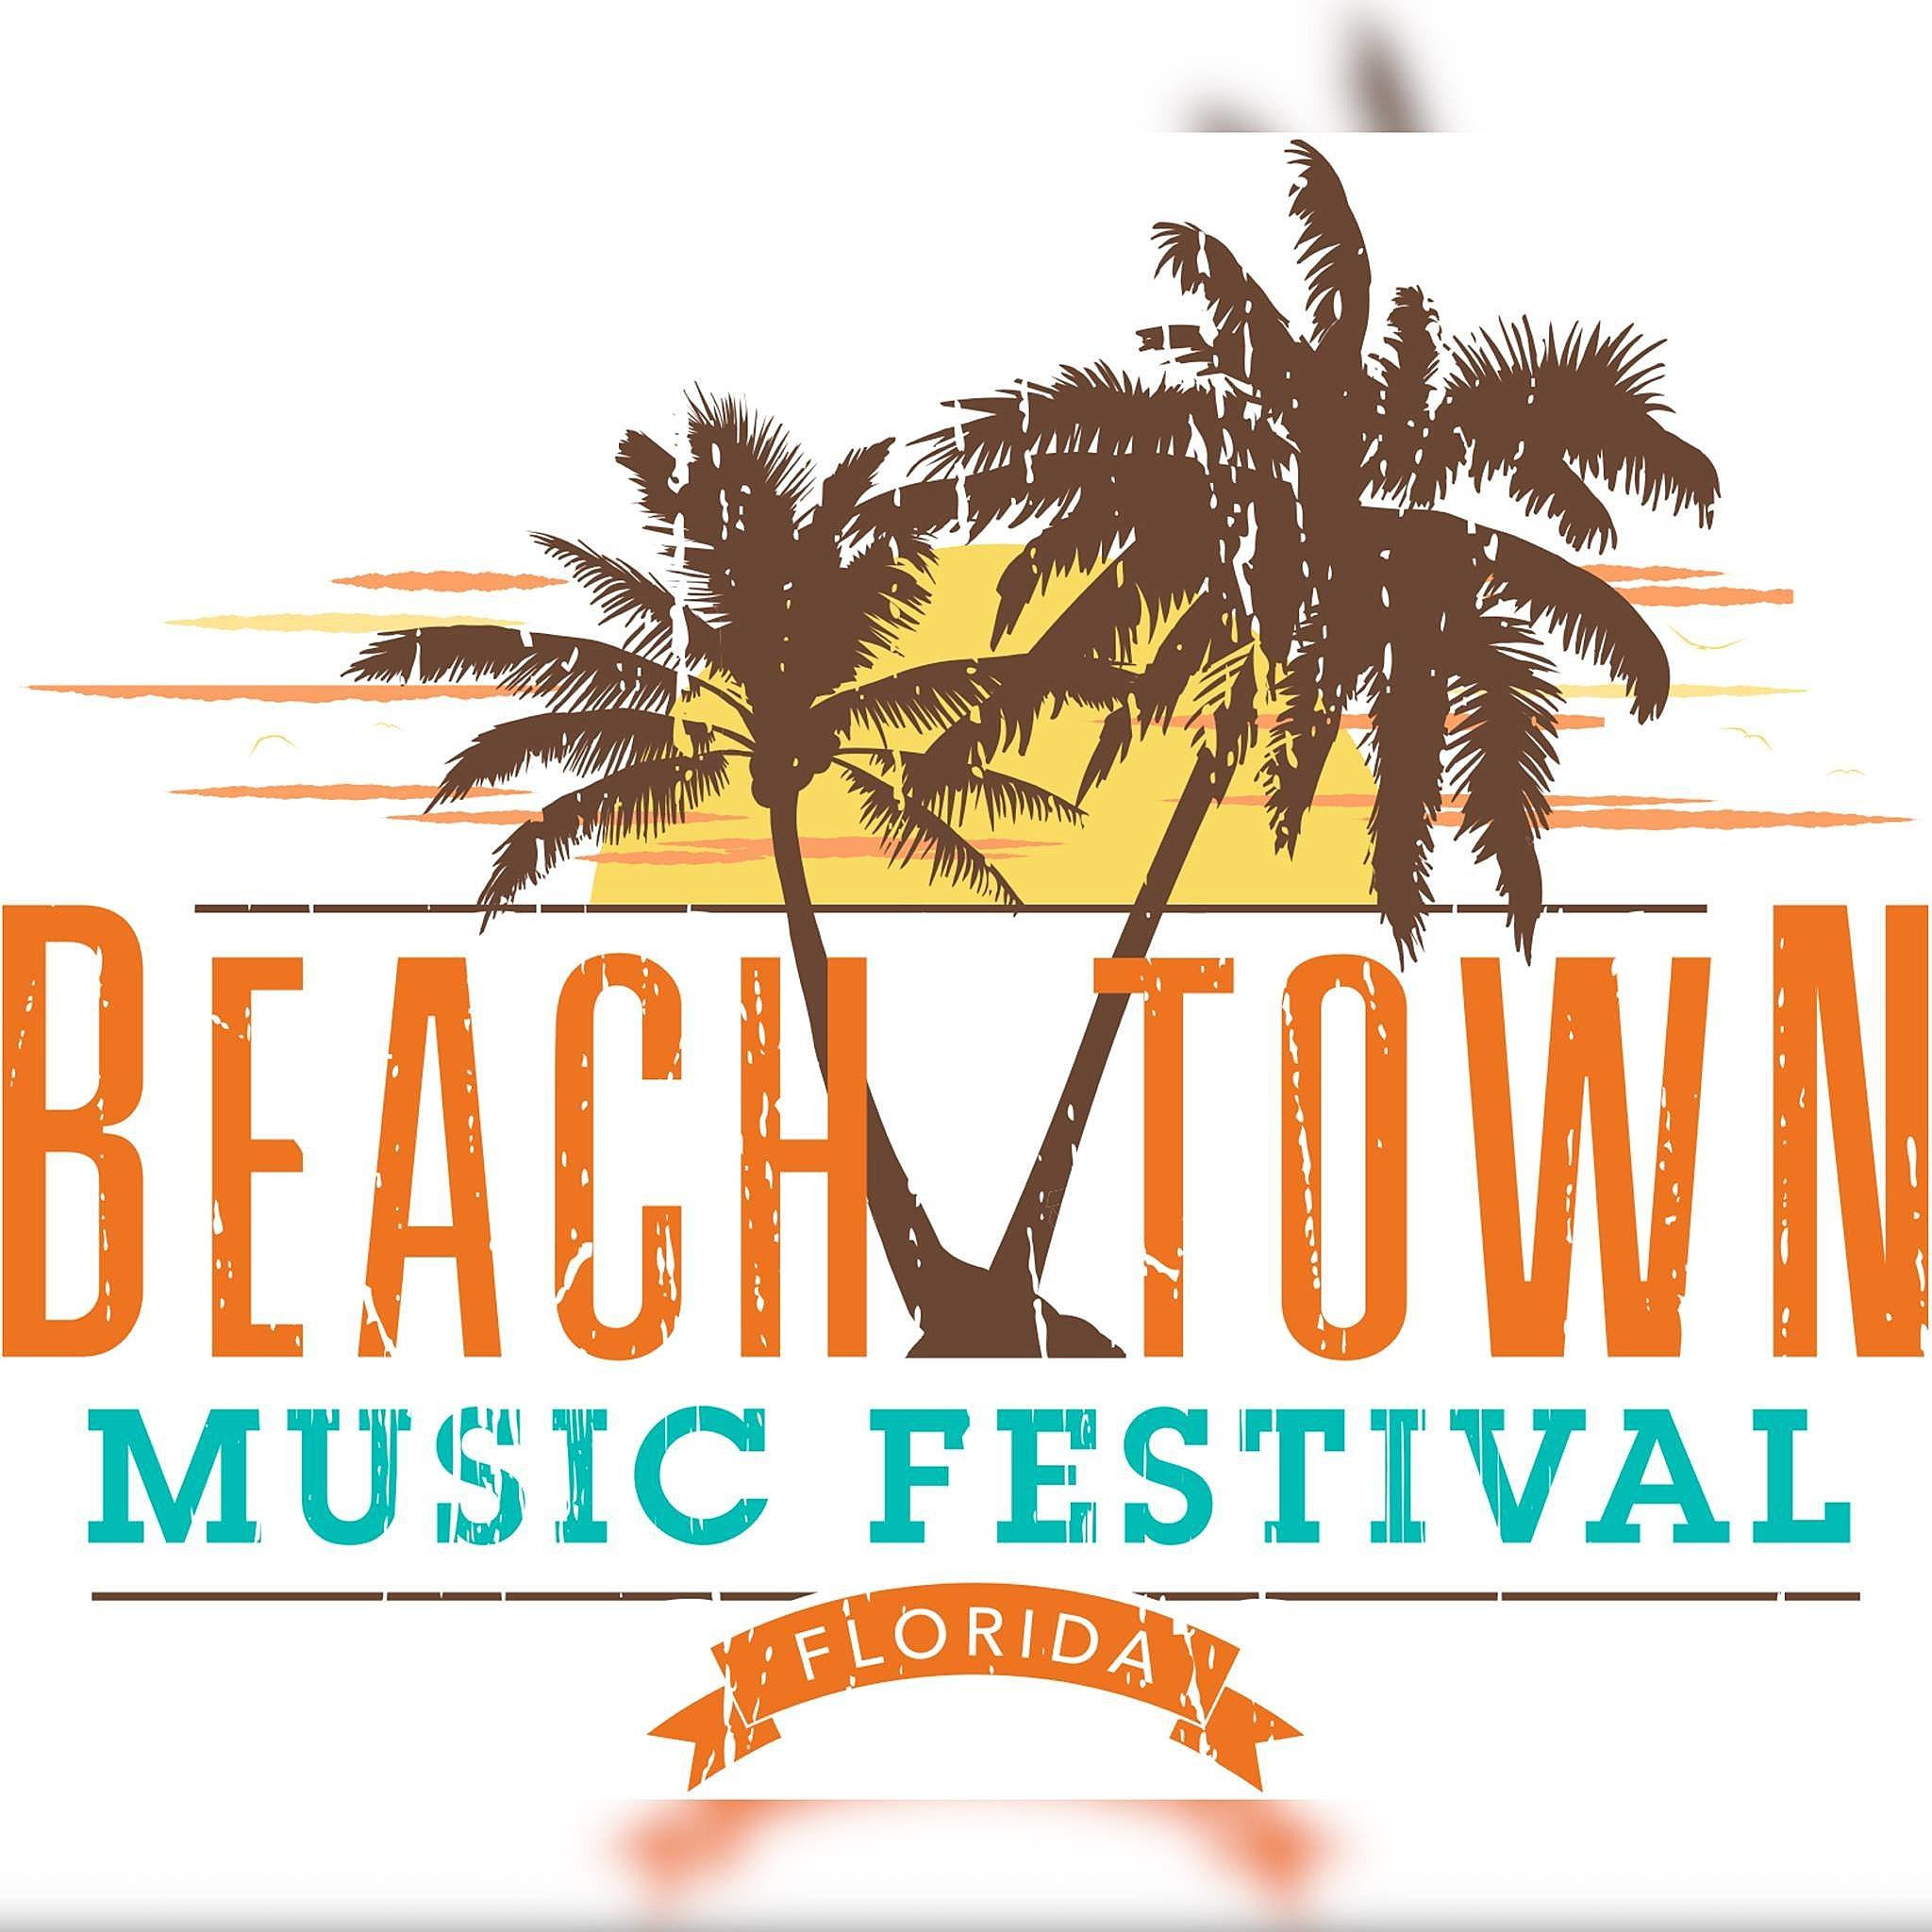 Country Music Festivals Guide - 8 great florida music festivals